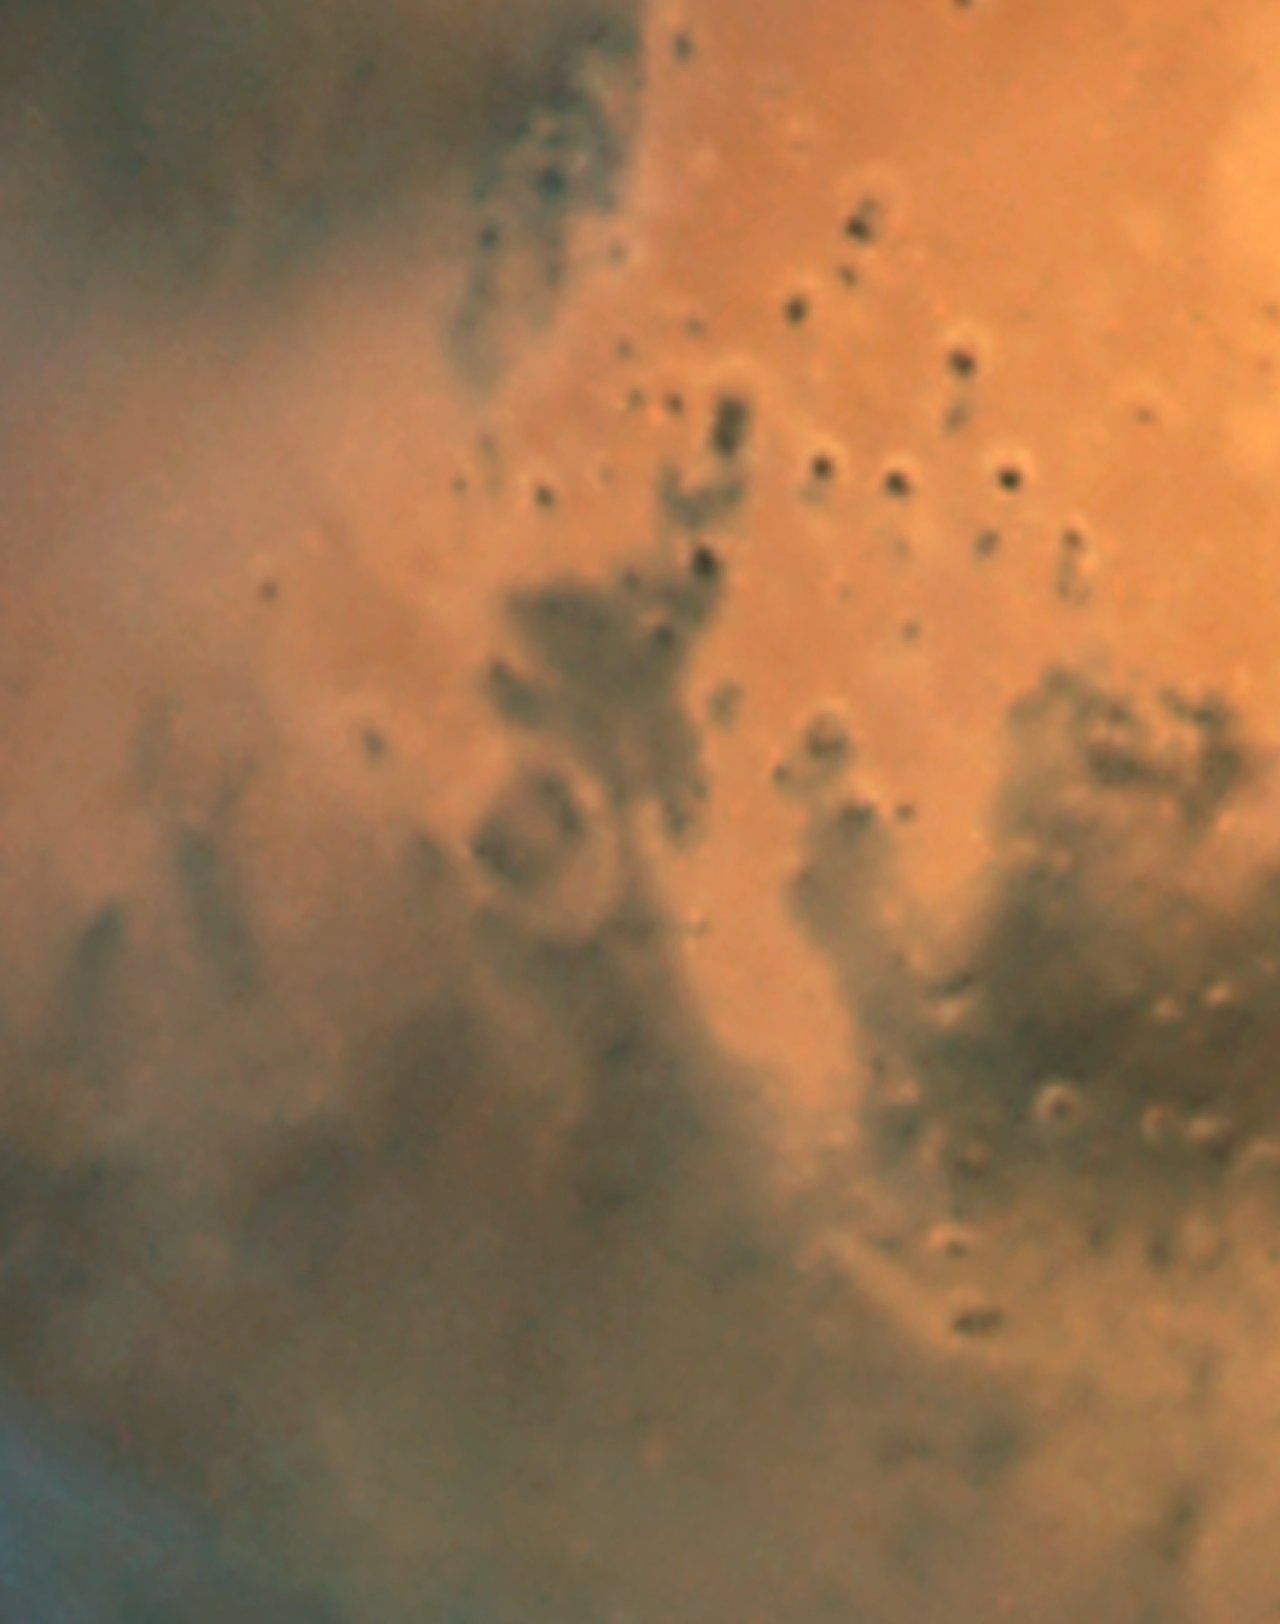 Mars Dust Storm: June 26, 2001 (WFPC2, unannotated)